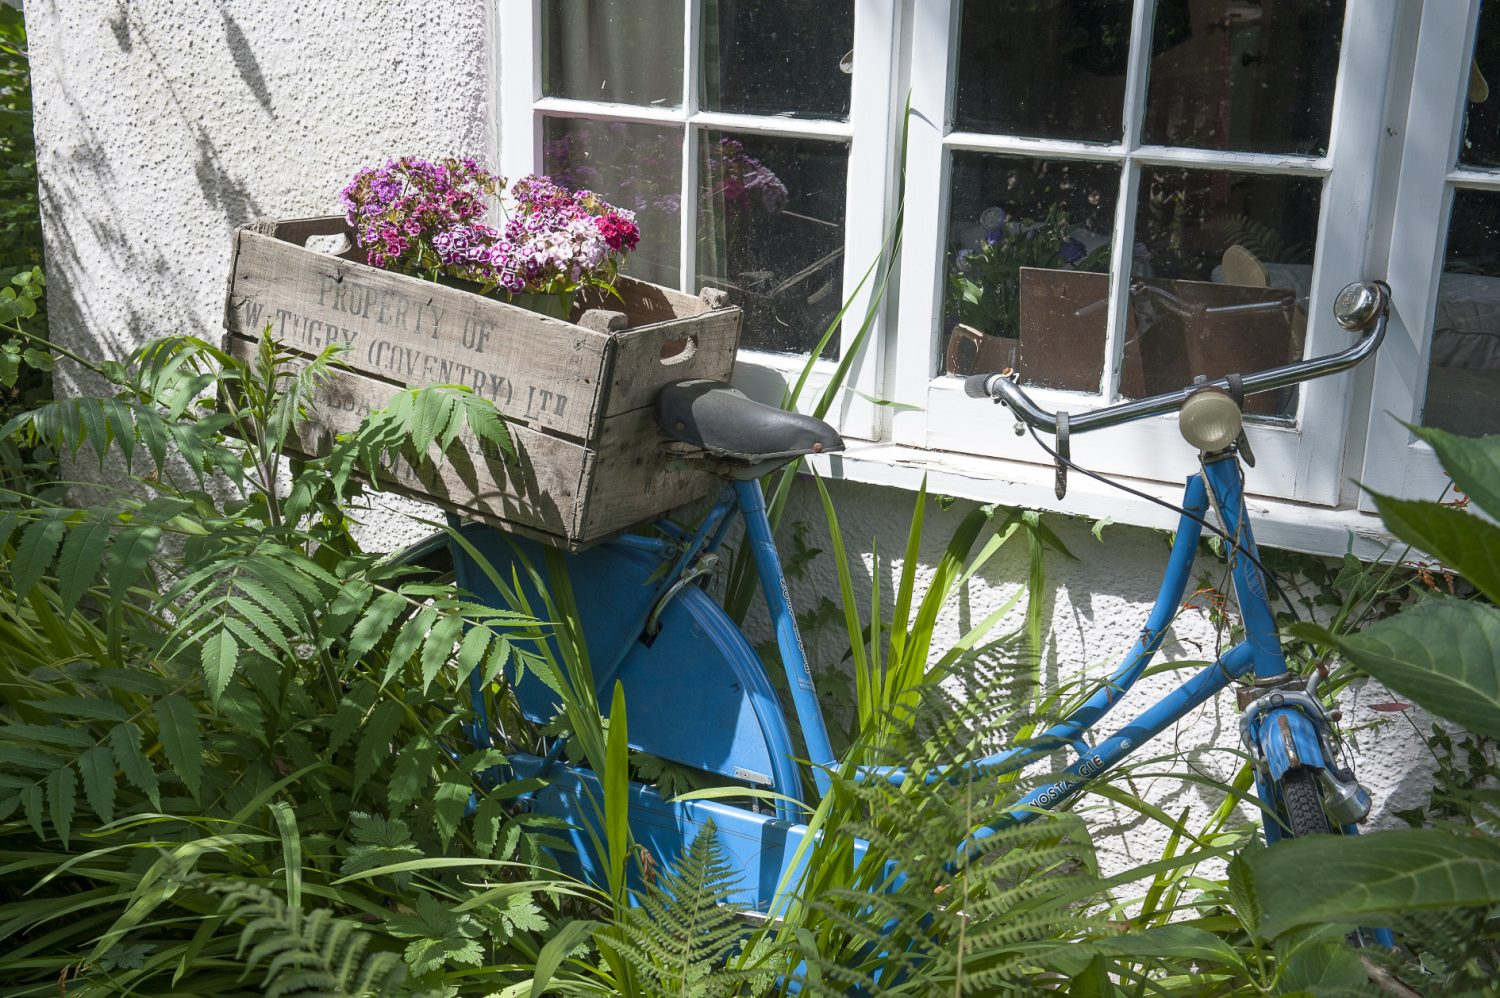 The cottage is concealed from the track that leads down to it by a stylishly 'wild' front garden dotted with vintage finds. Underneath the sitting room window, Pippa has repurposed an old blue bike as a raised planter